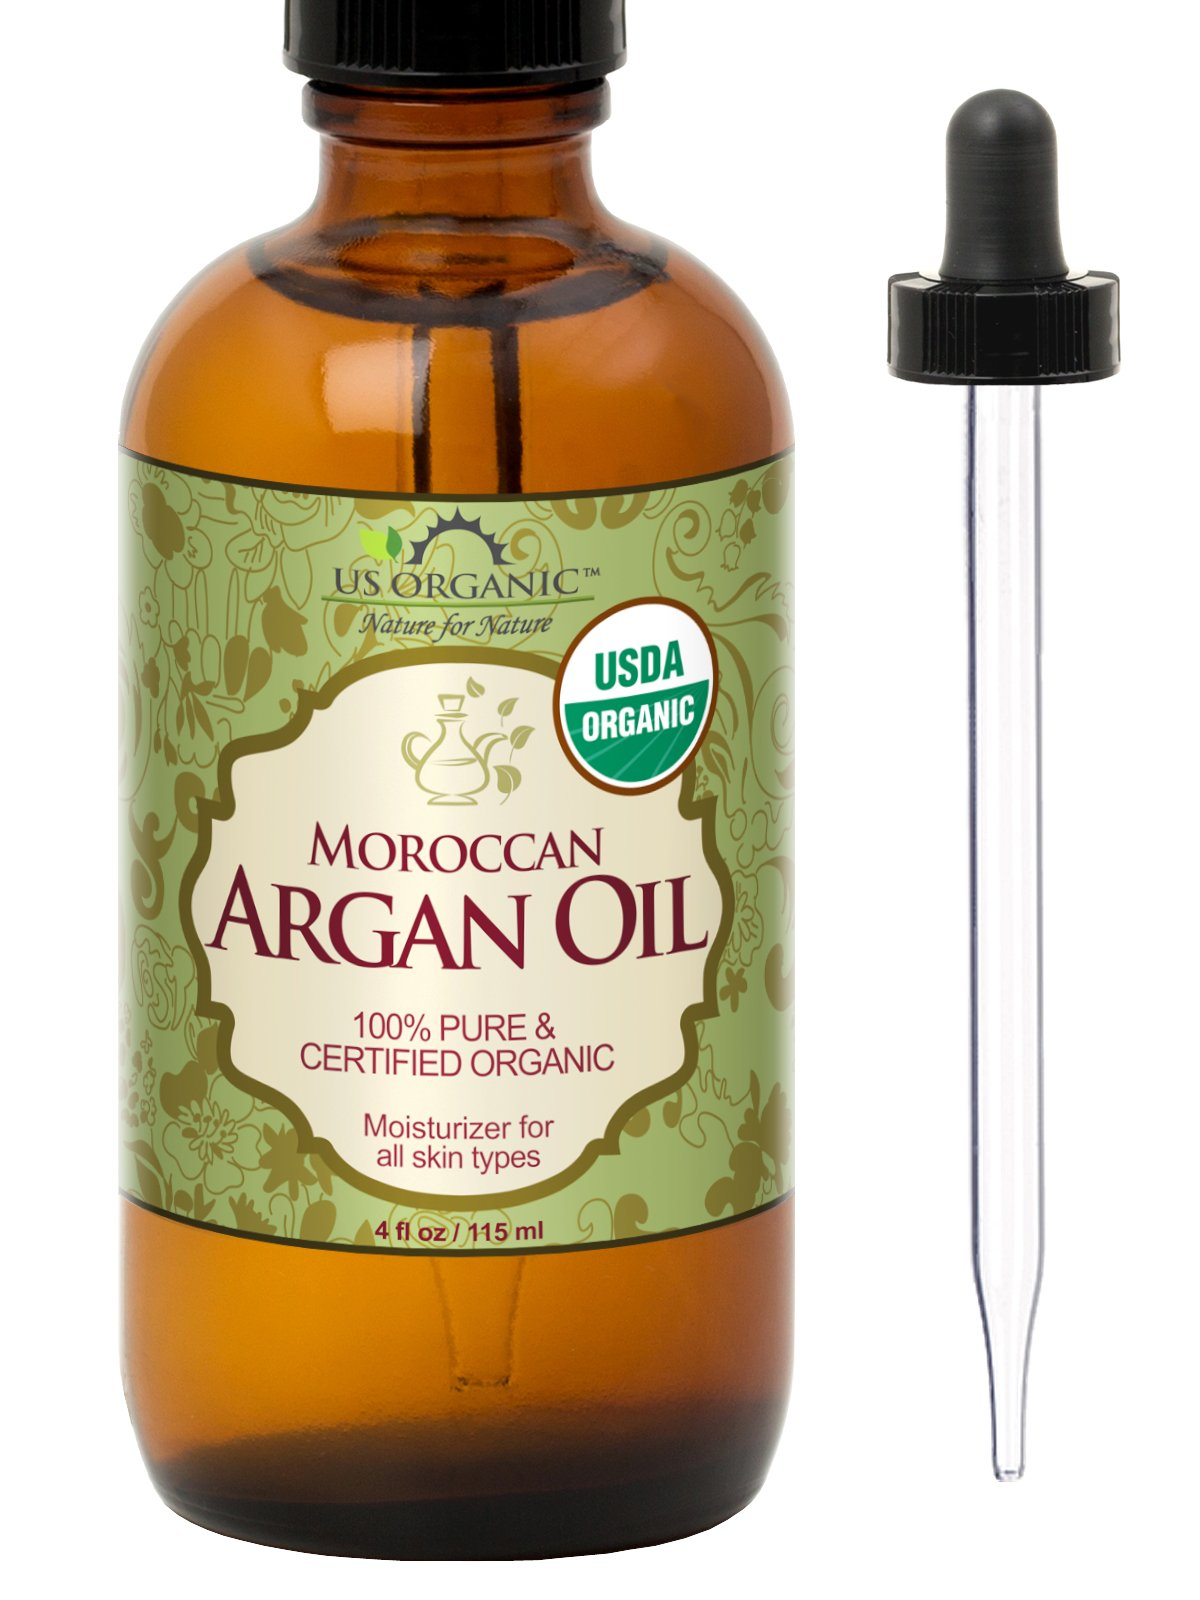 US Organic Moroccan Argan Oil, USDA Certified Organic,100% Pure & Natural, Cold Pressed Virgin, Unrefined, 4 Oz in Amber Glass Bottle with Glass Eye Dropper for Easy Application. Origin_Morocco by US Organic